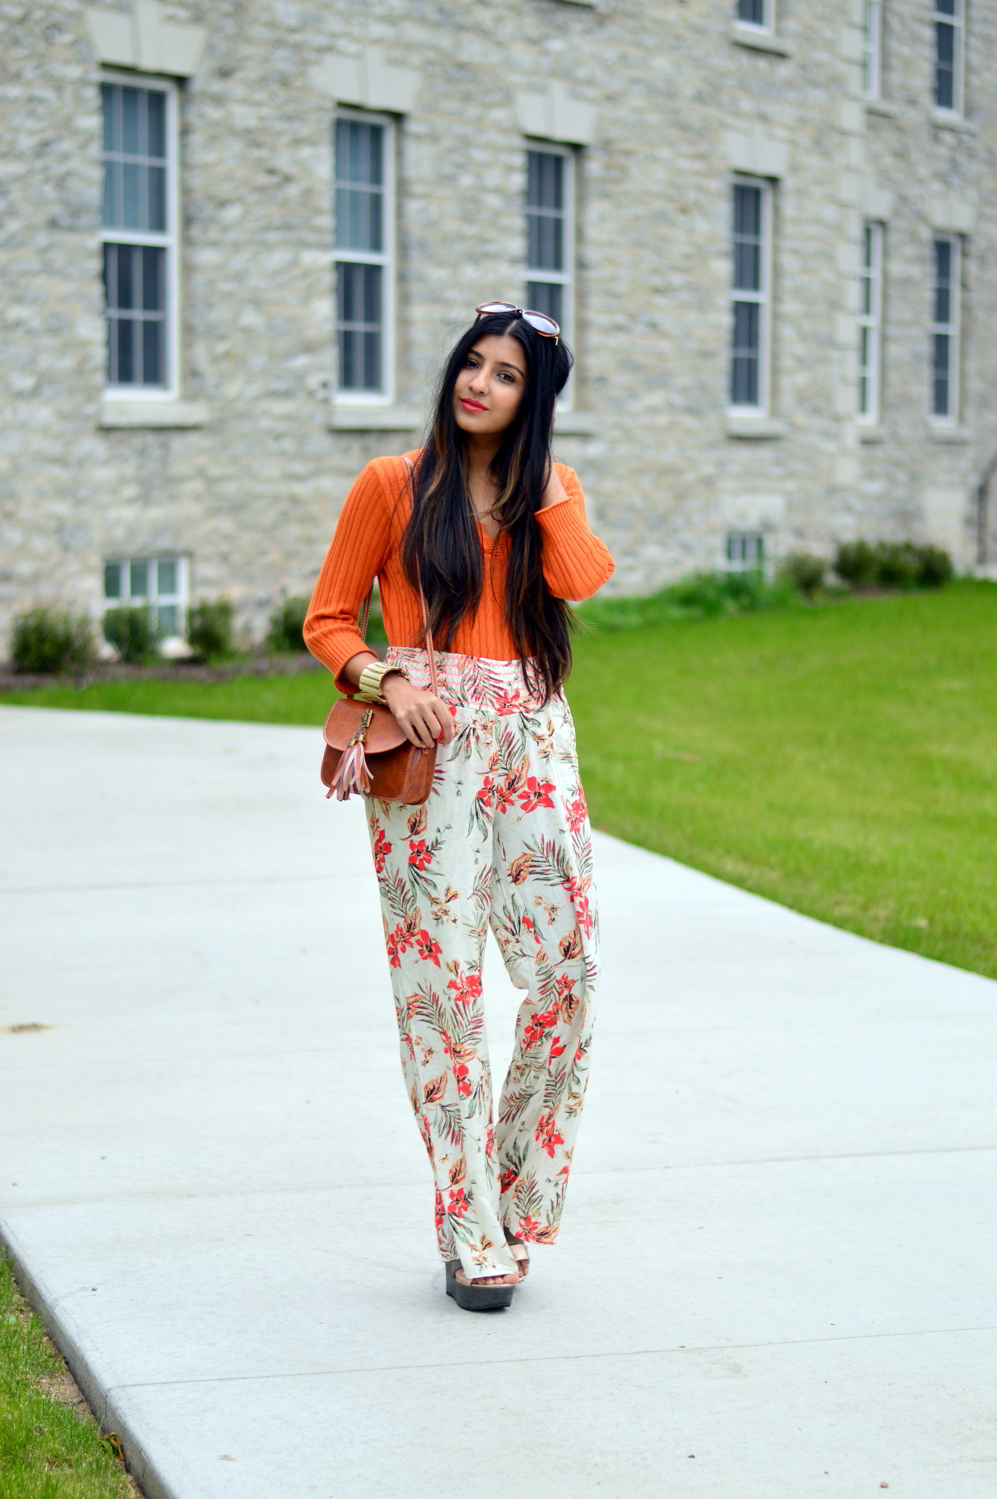 loral-wide-leg-pants-beach-coverup-summer-style-blogger-outfit 3